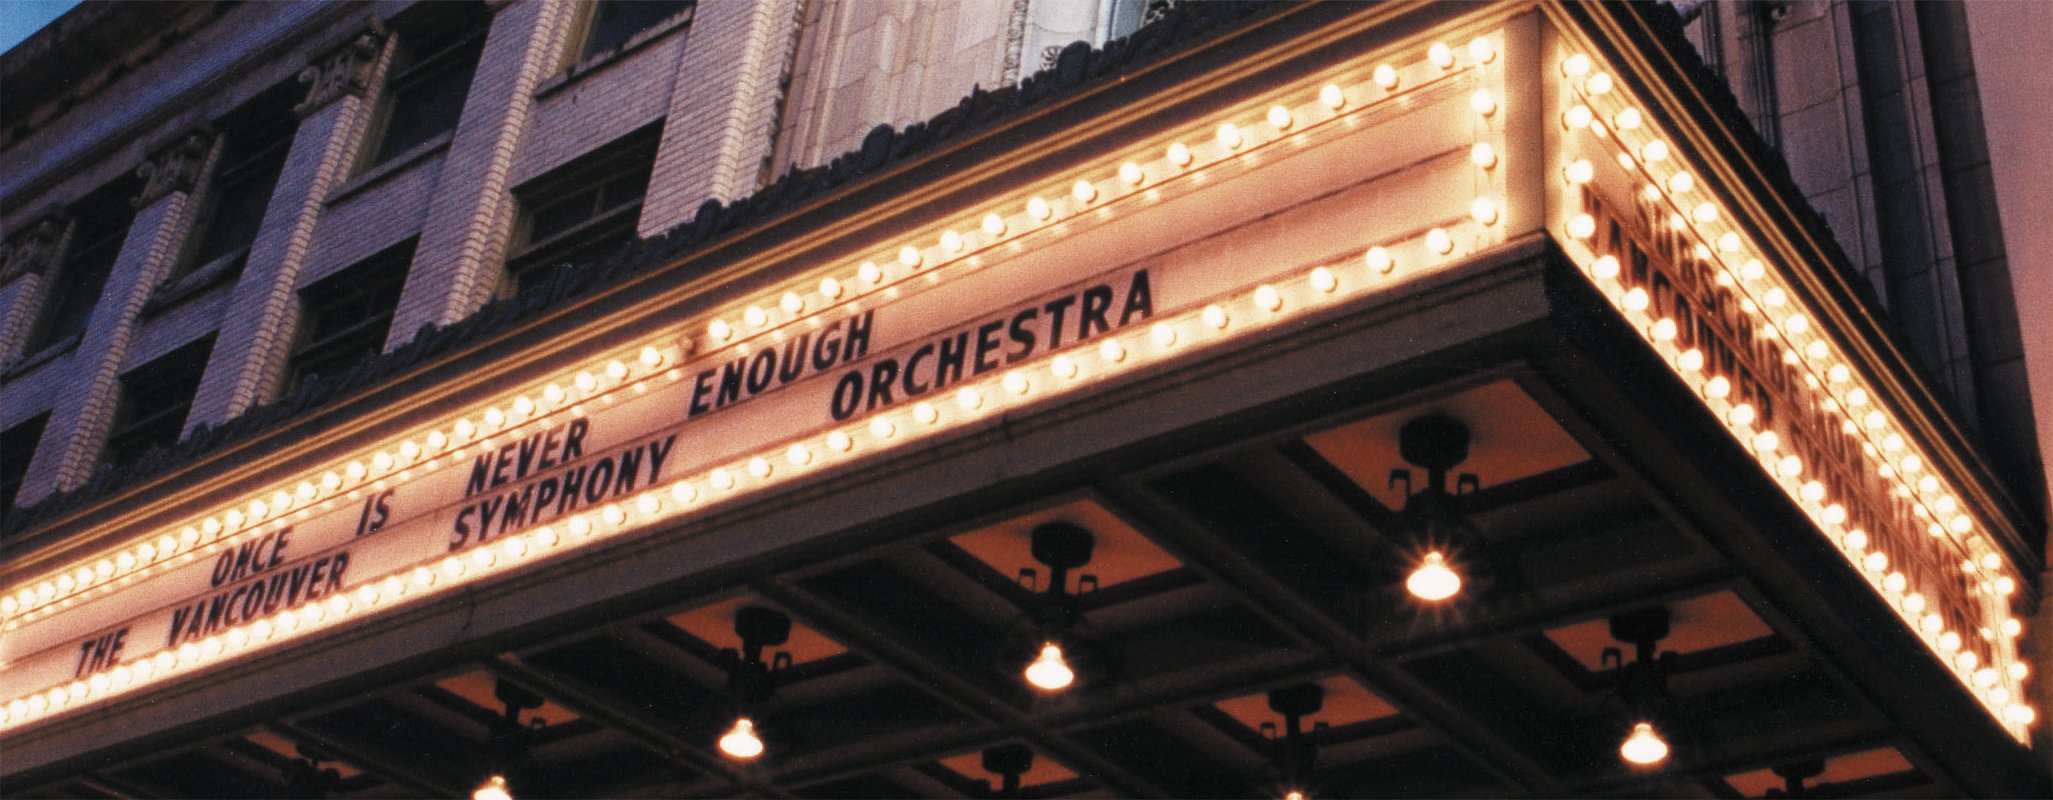 Marquee featuring the Vancouver SYmphony Orchestra